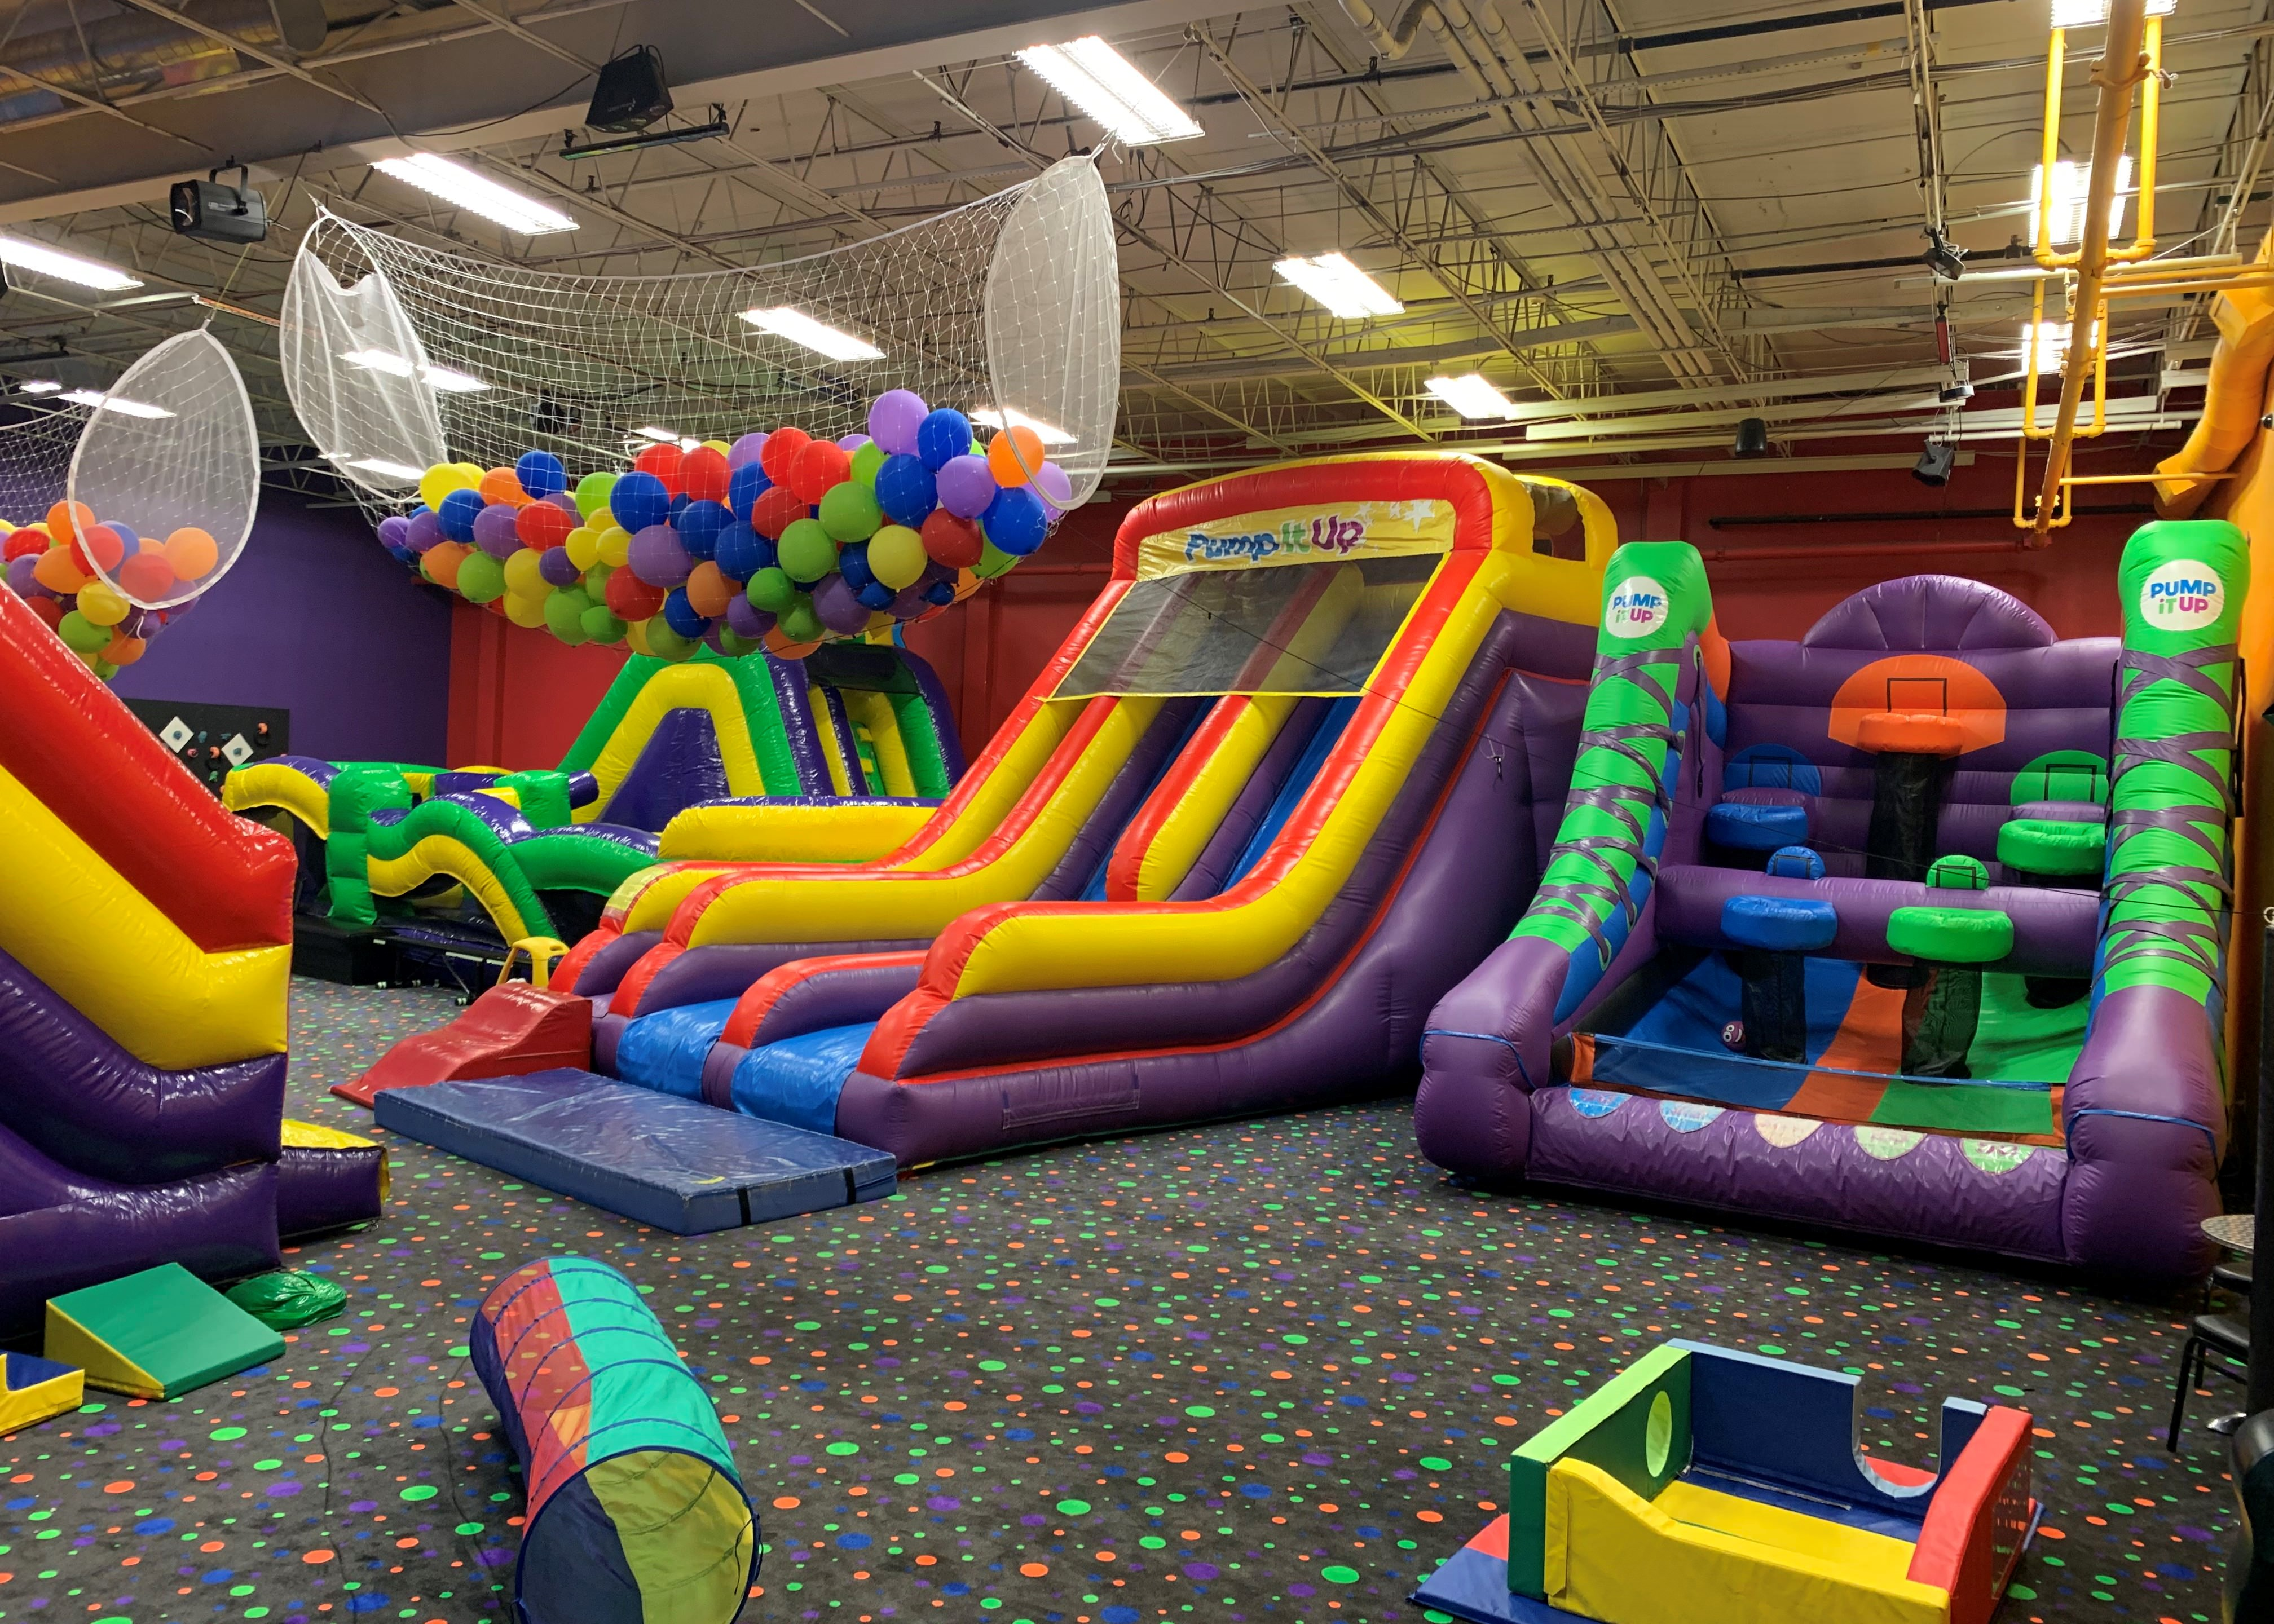 Pump It Up birthday party arena space with four large inflatable rides for private parties.